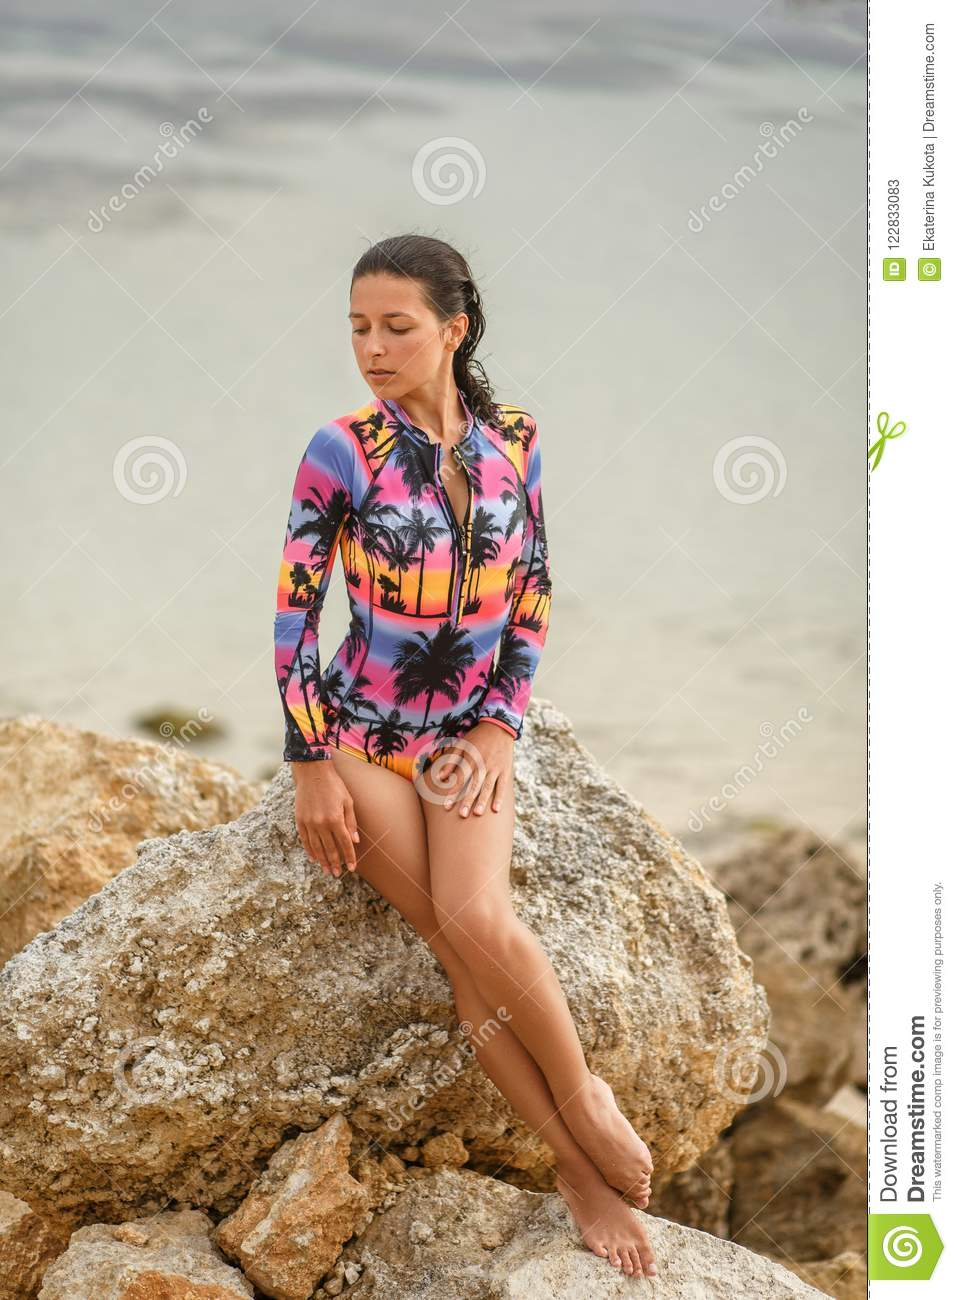 girl posing sitting on rocks at the beach